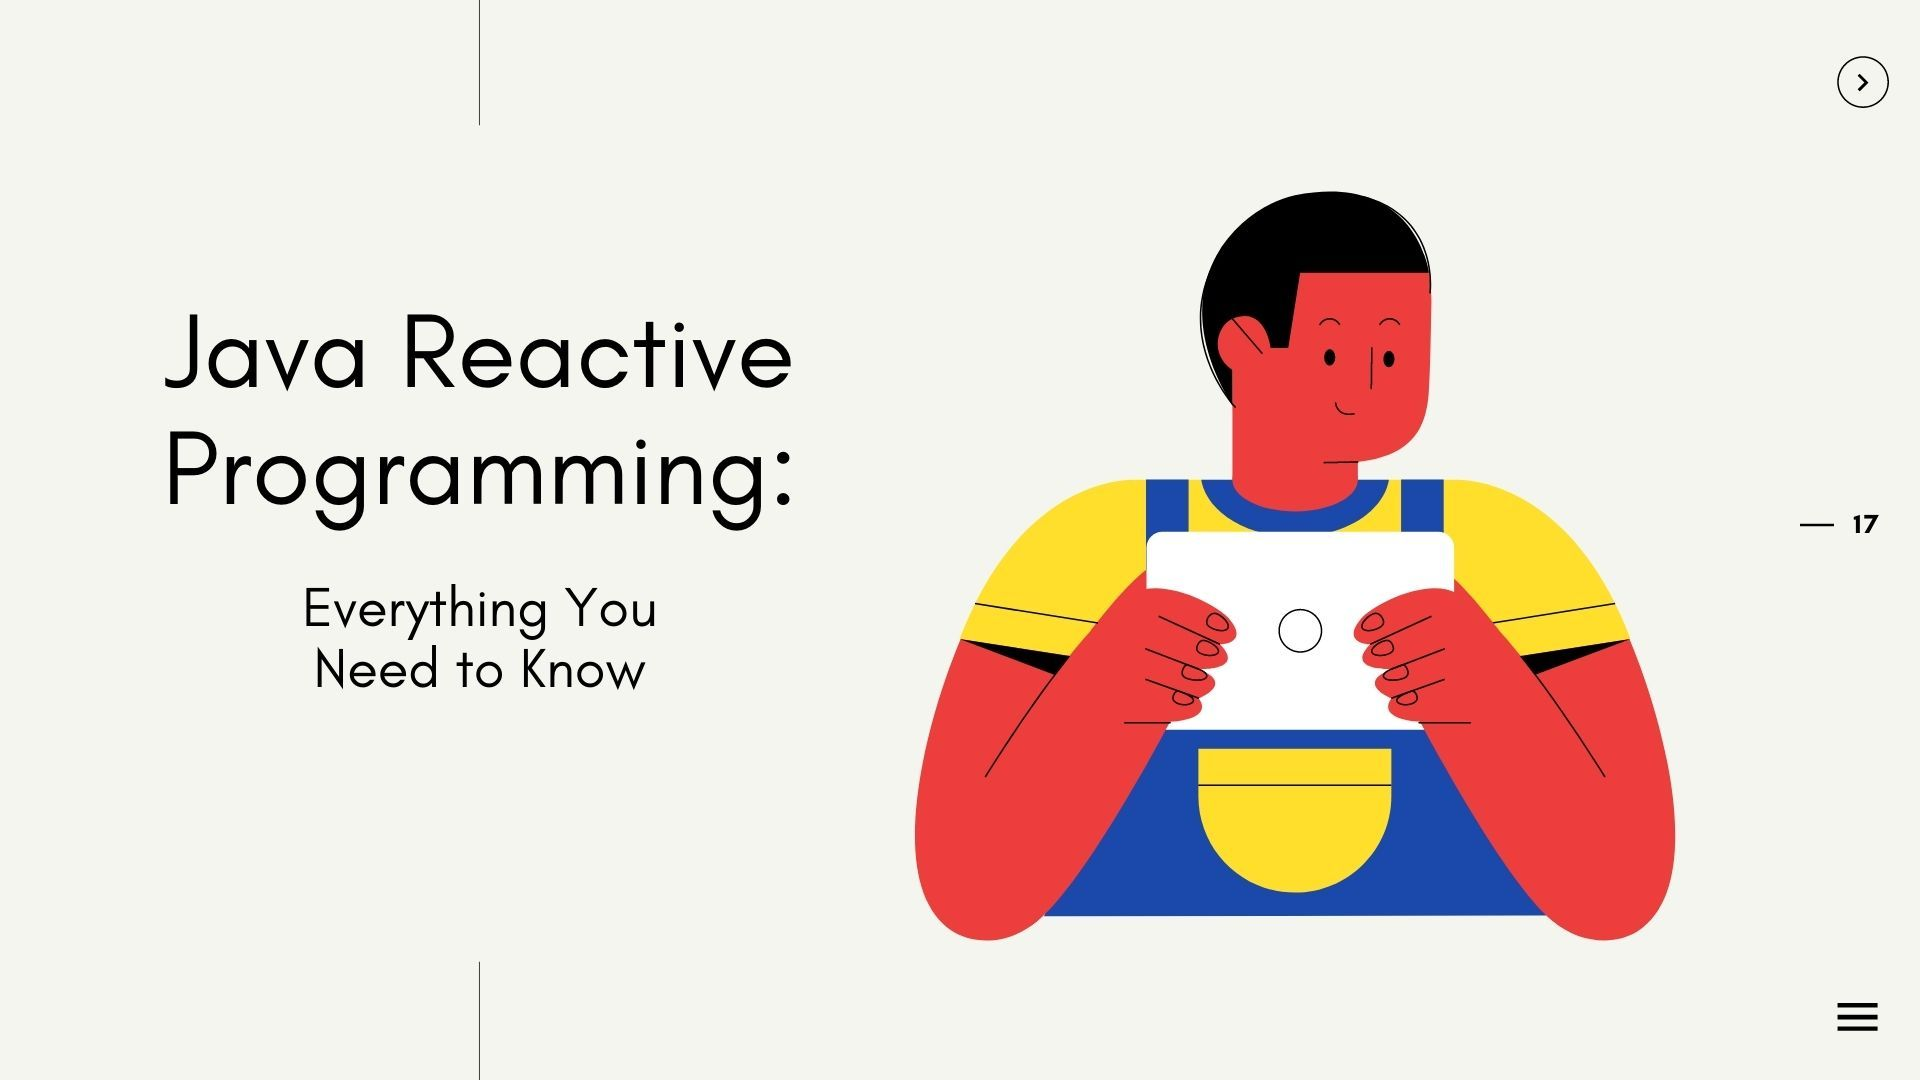 Java Reactive Programming: Everything You Need to Know